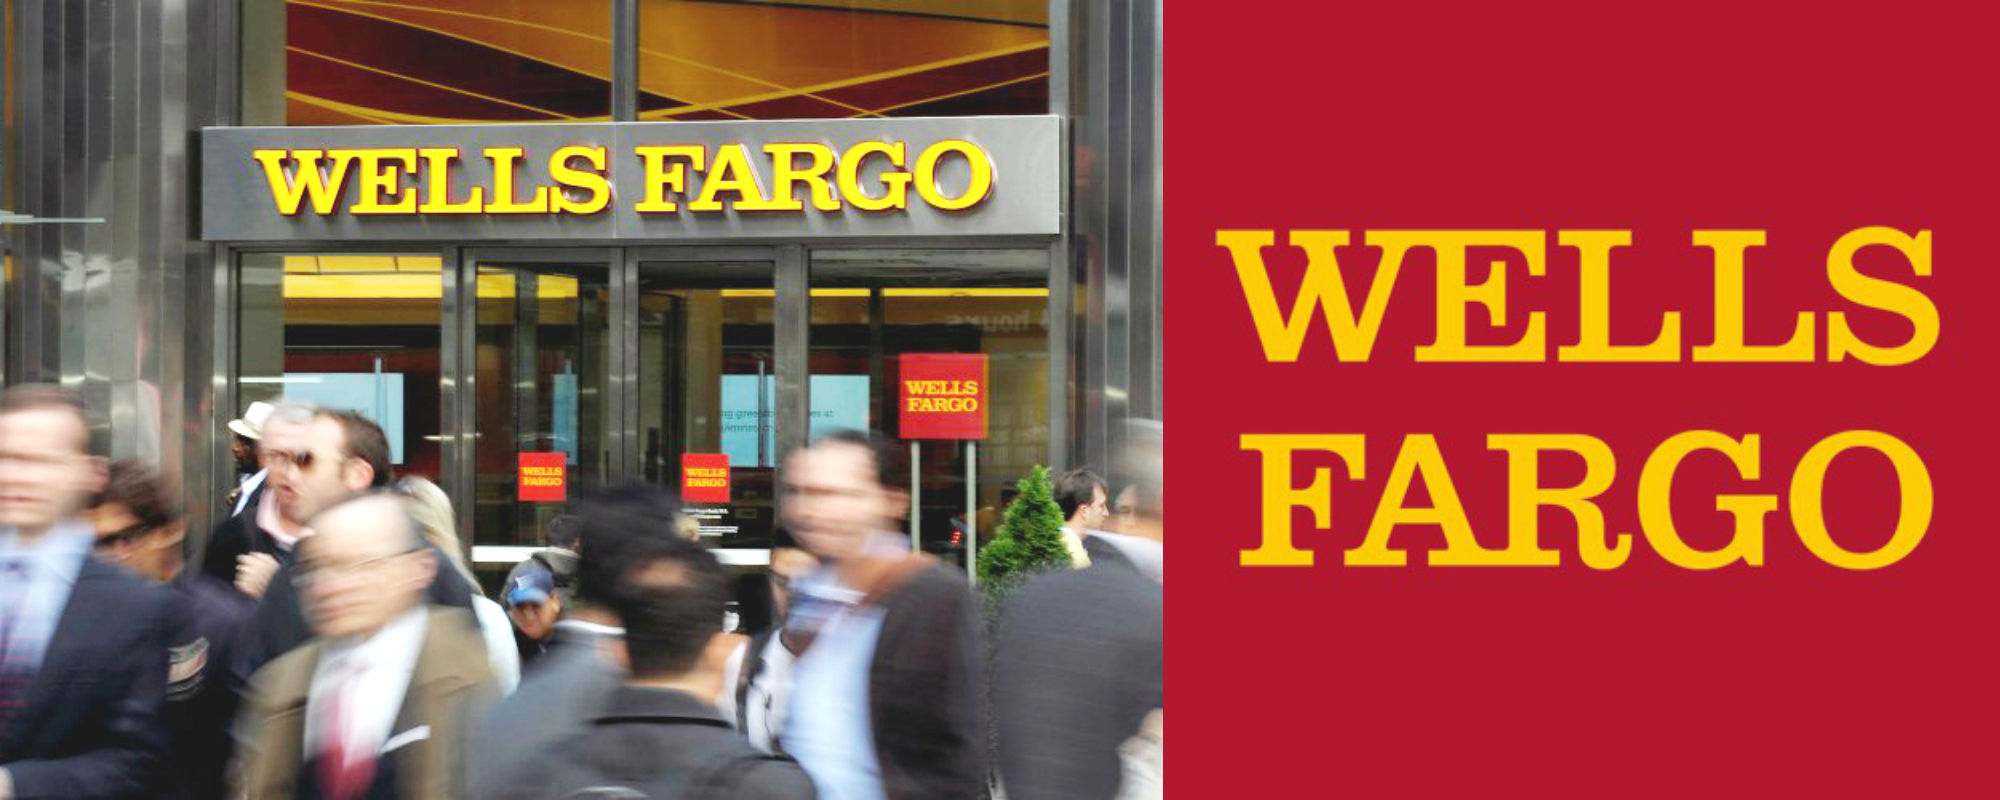 Wells Fargo Banner Most Powerful M&A Firms in the world best upslide